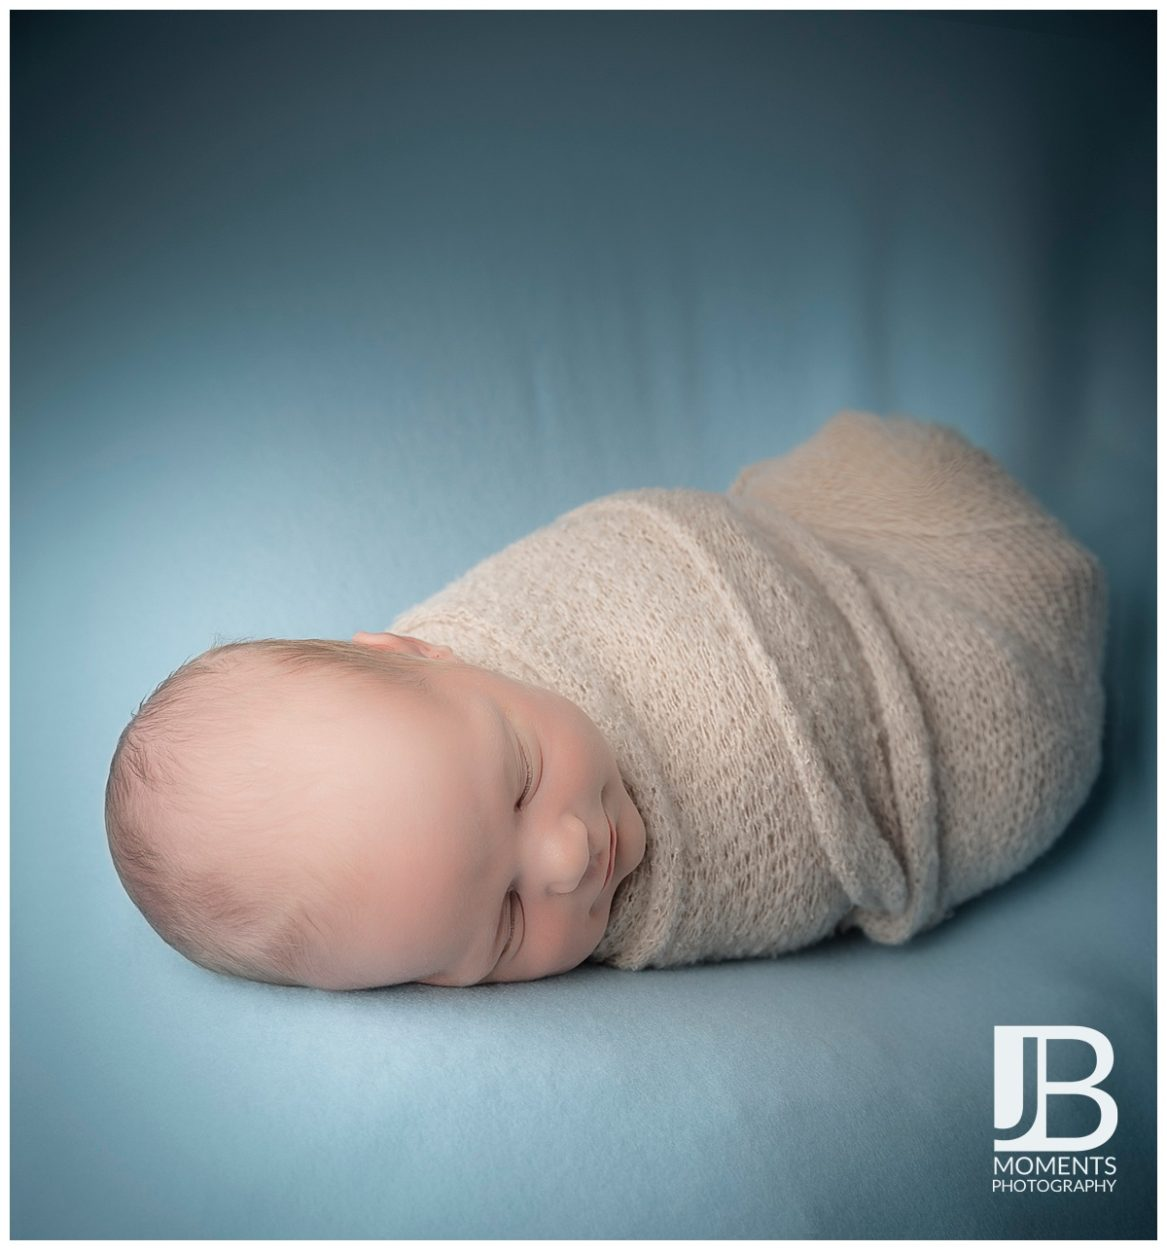 Baby photographer in Stirling - JB Moments Photography